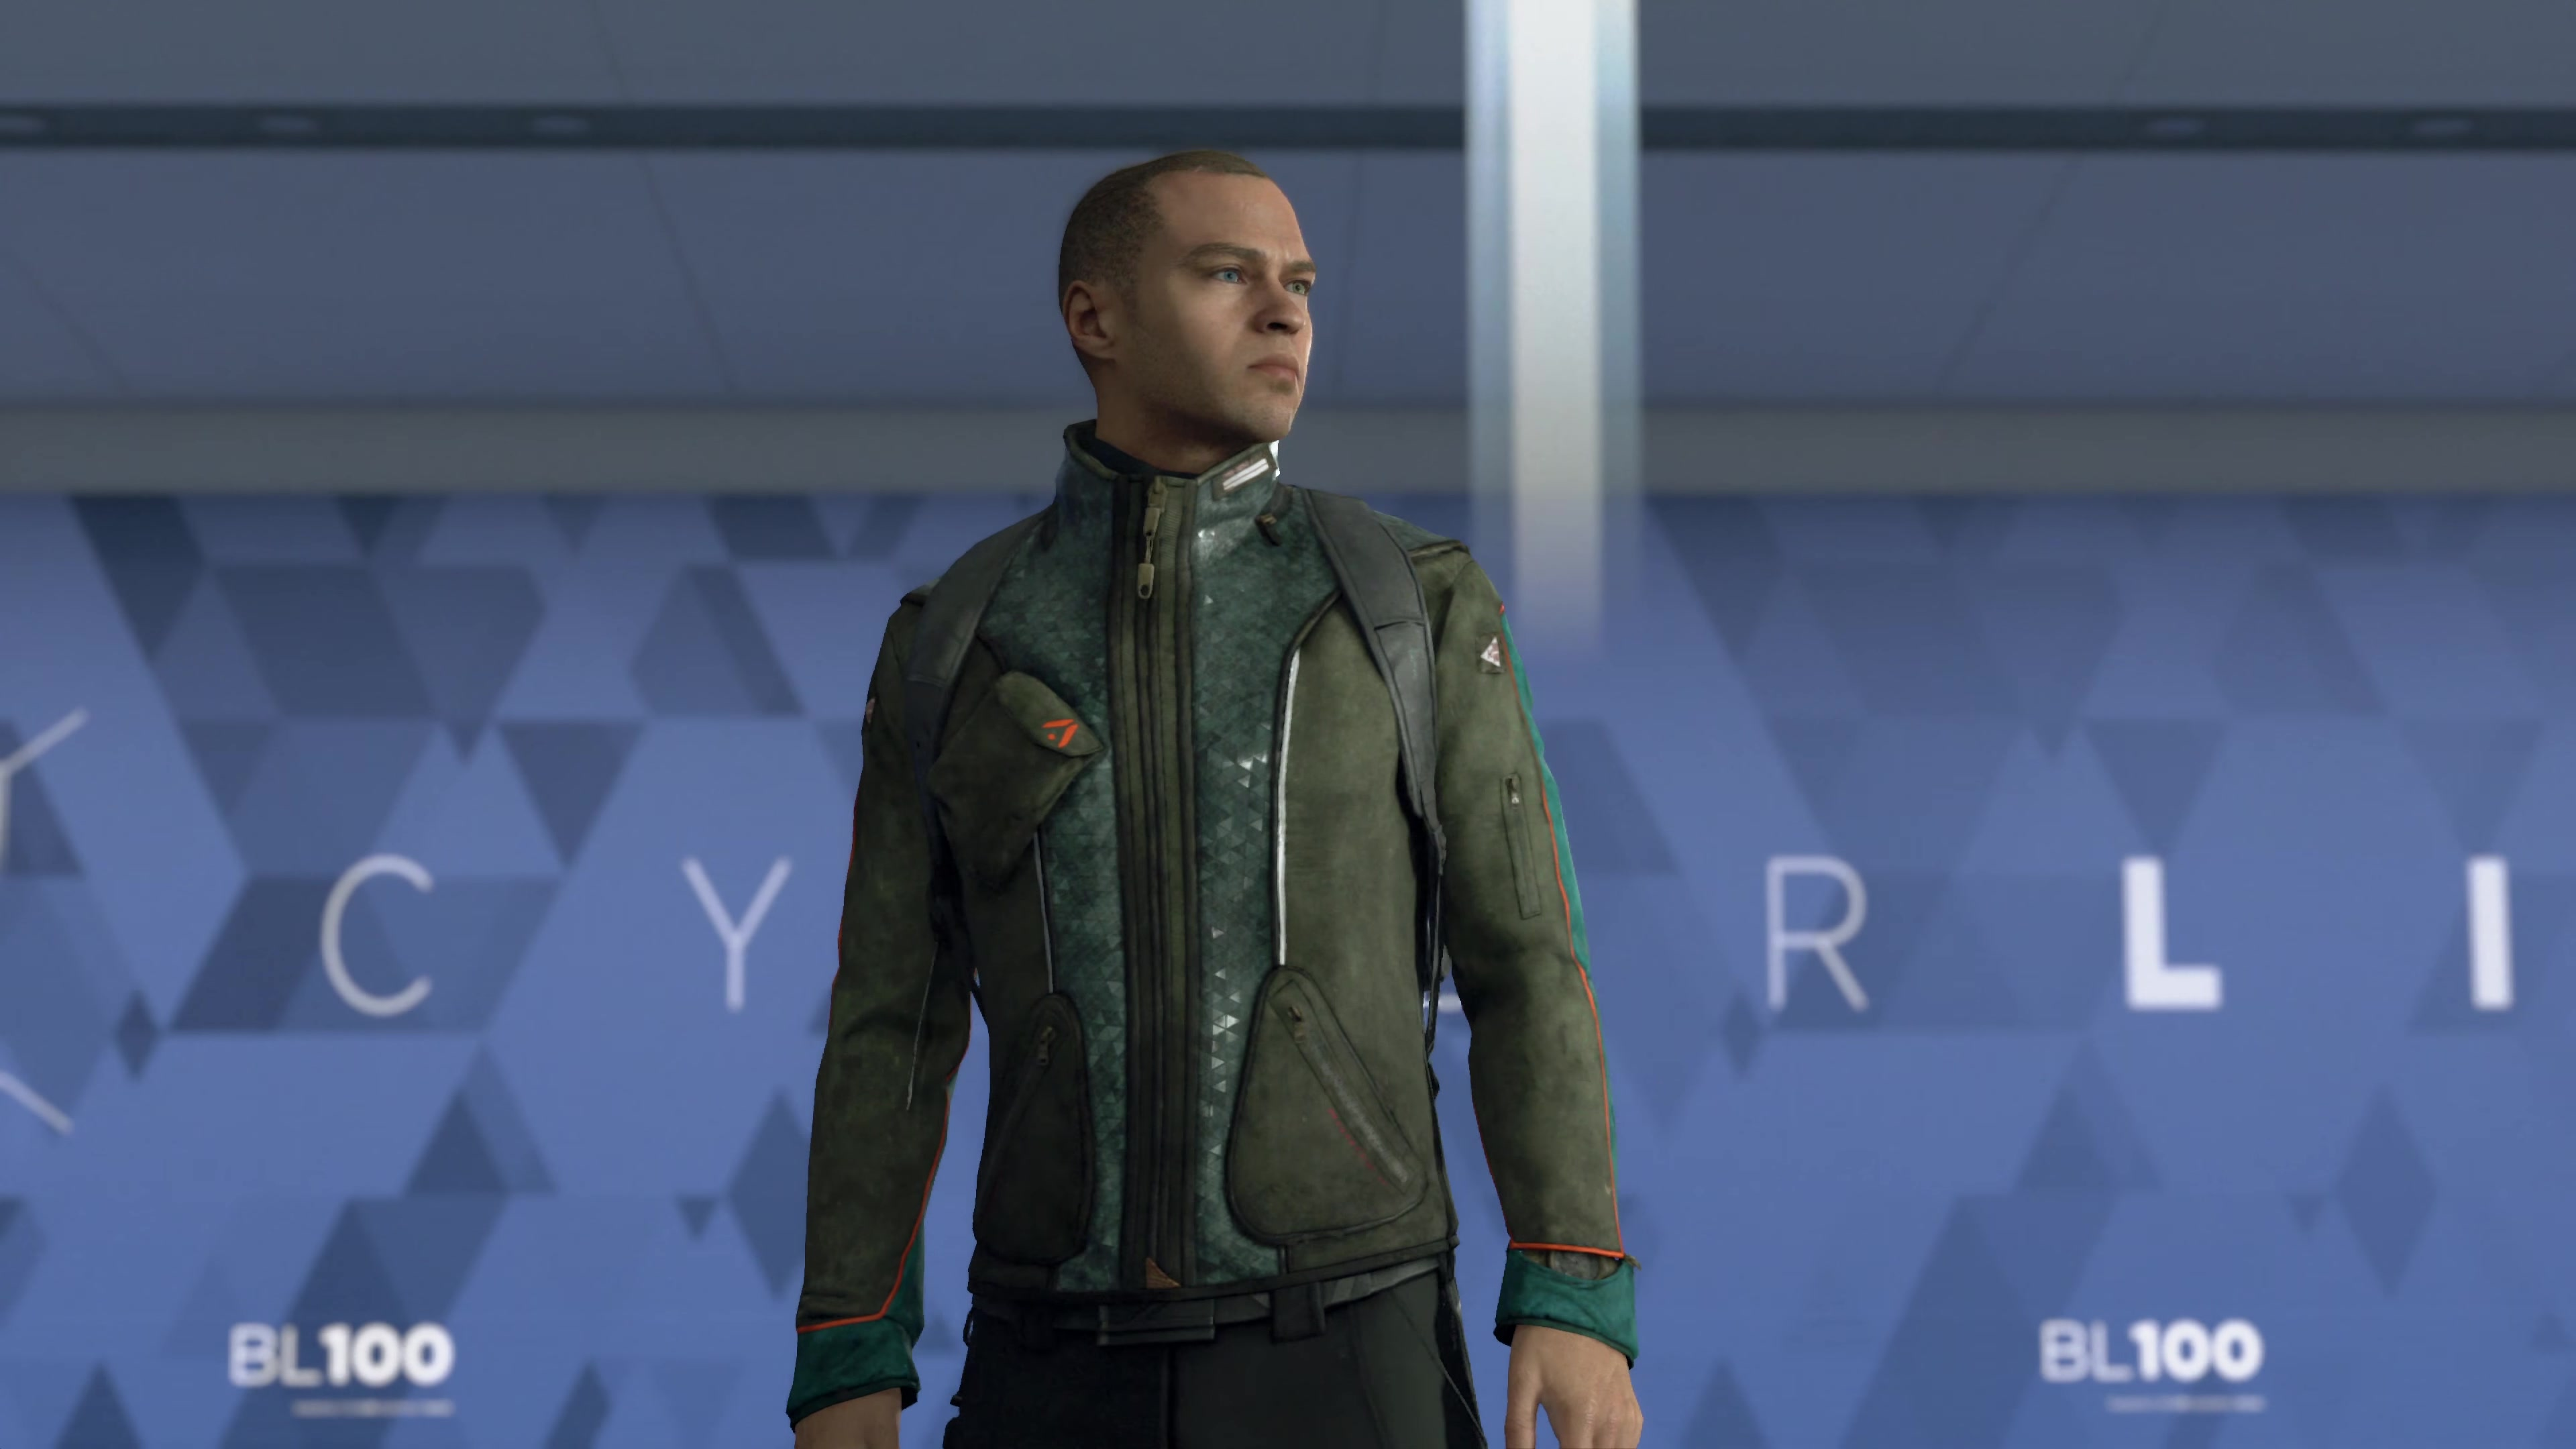 Detroit0 0785.jpg - Detroit: Become Human